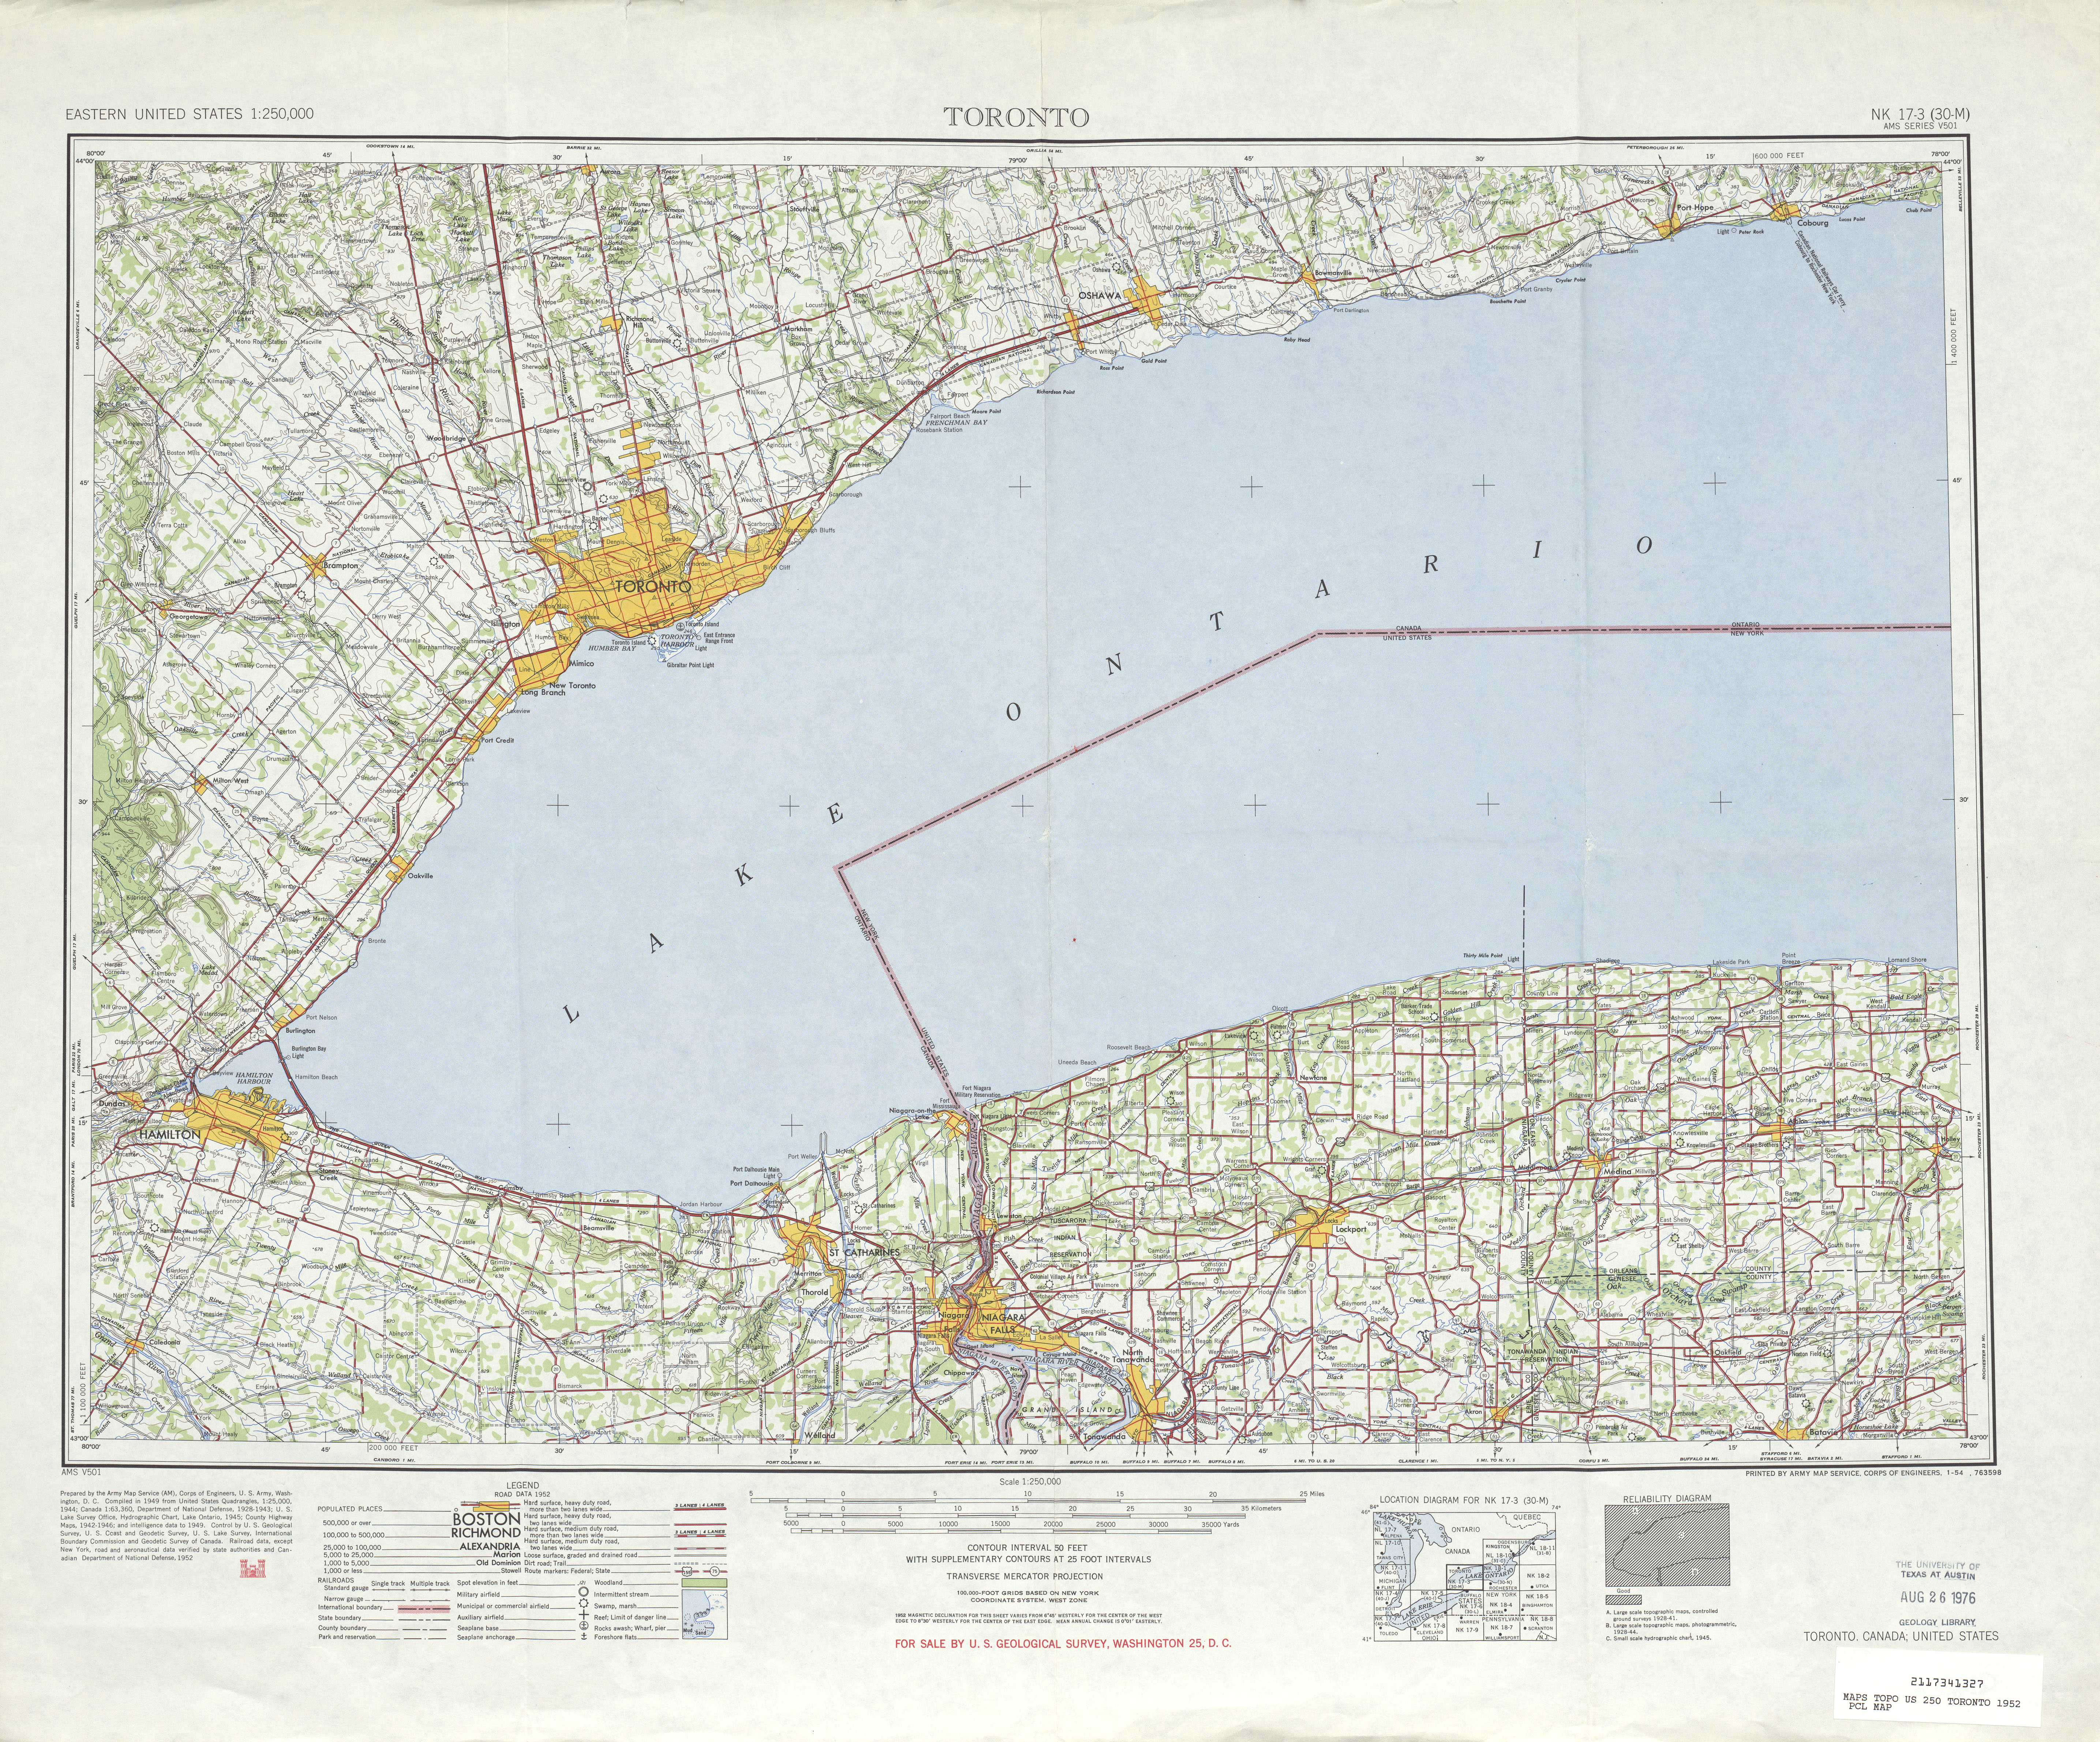 Toronto Topographic Map Sheet, United States 1952